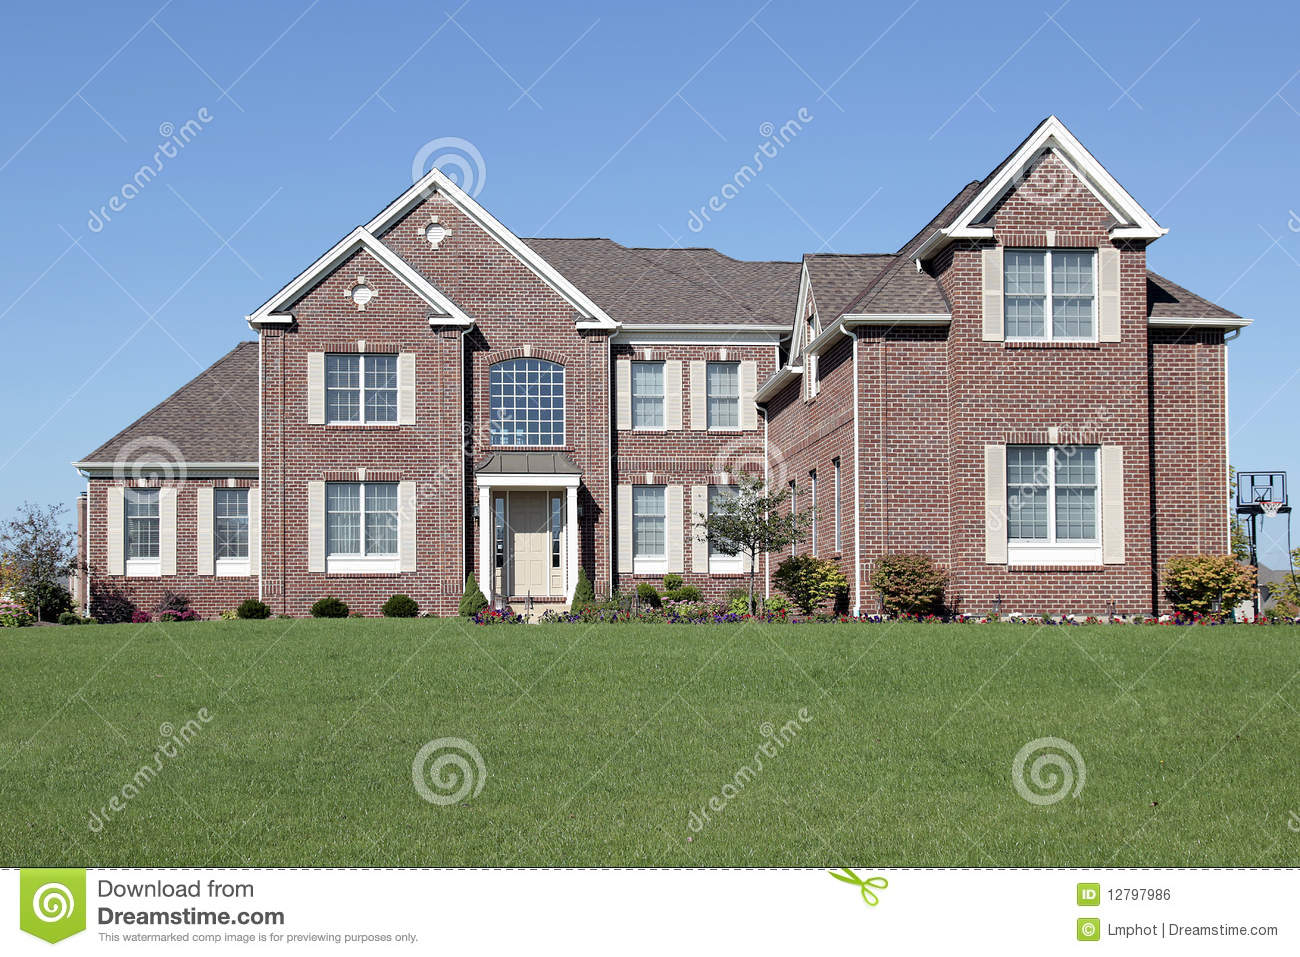 Luxury Brick Home Royalty Free Stock Image Image 12797986